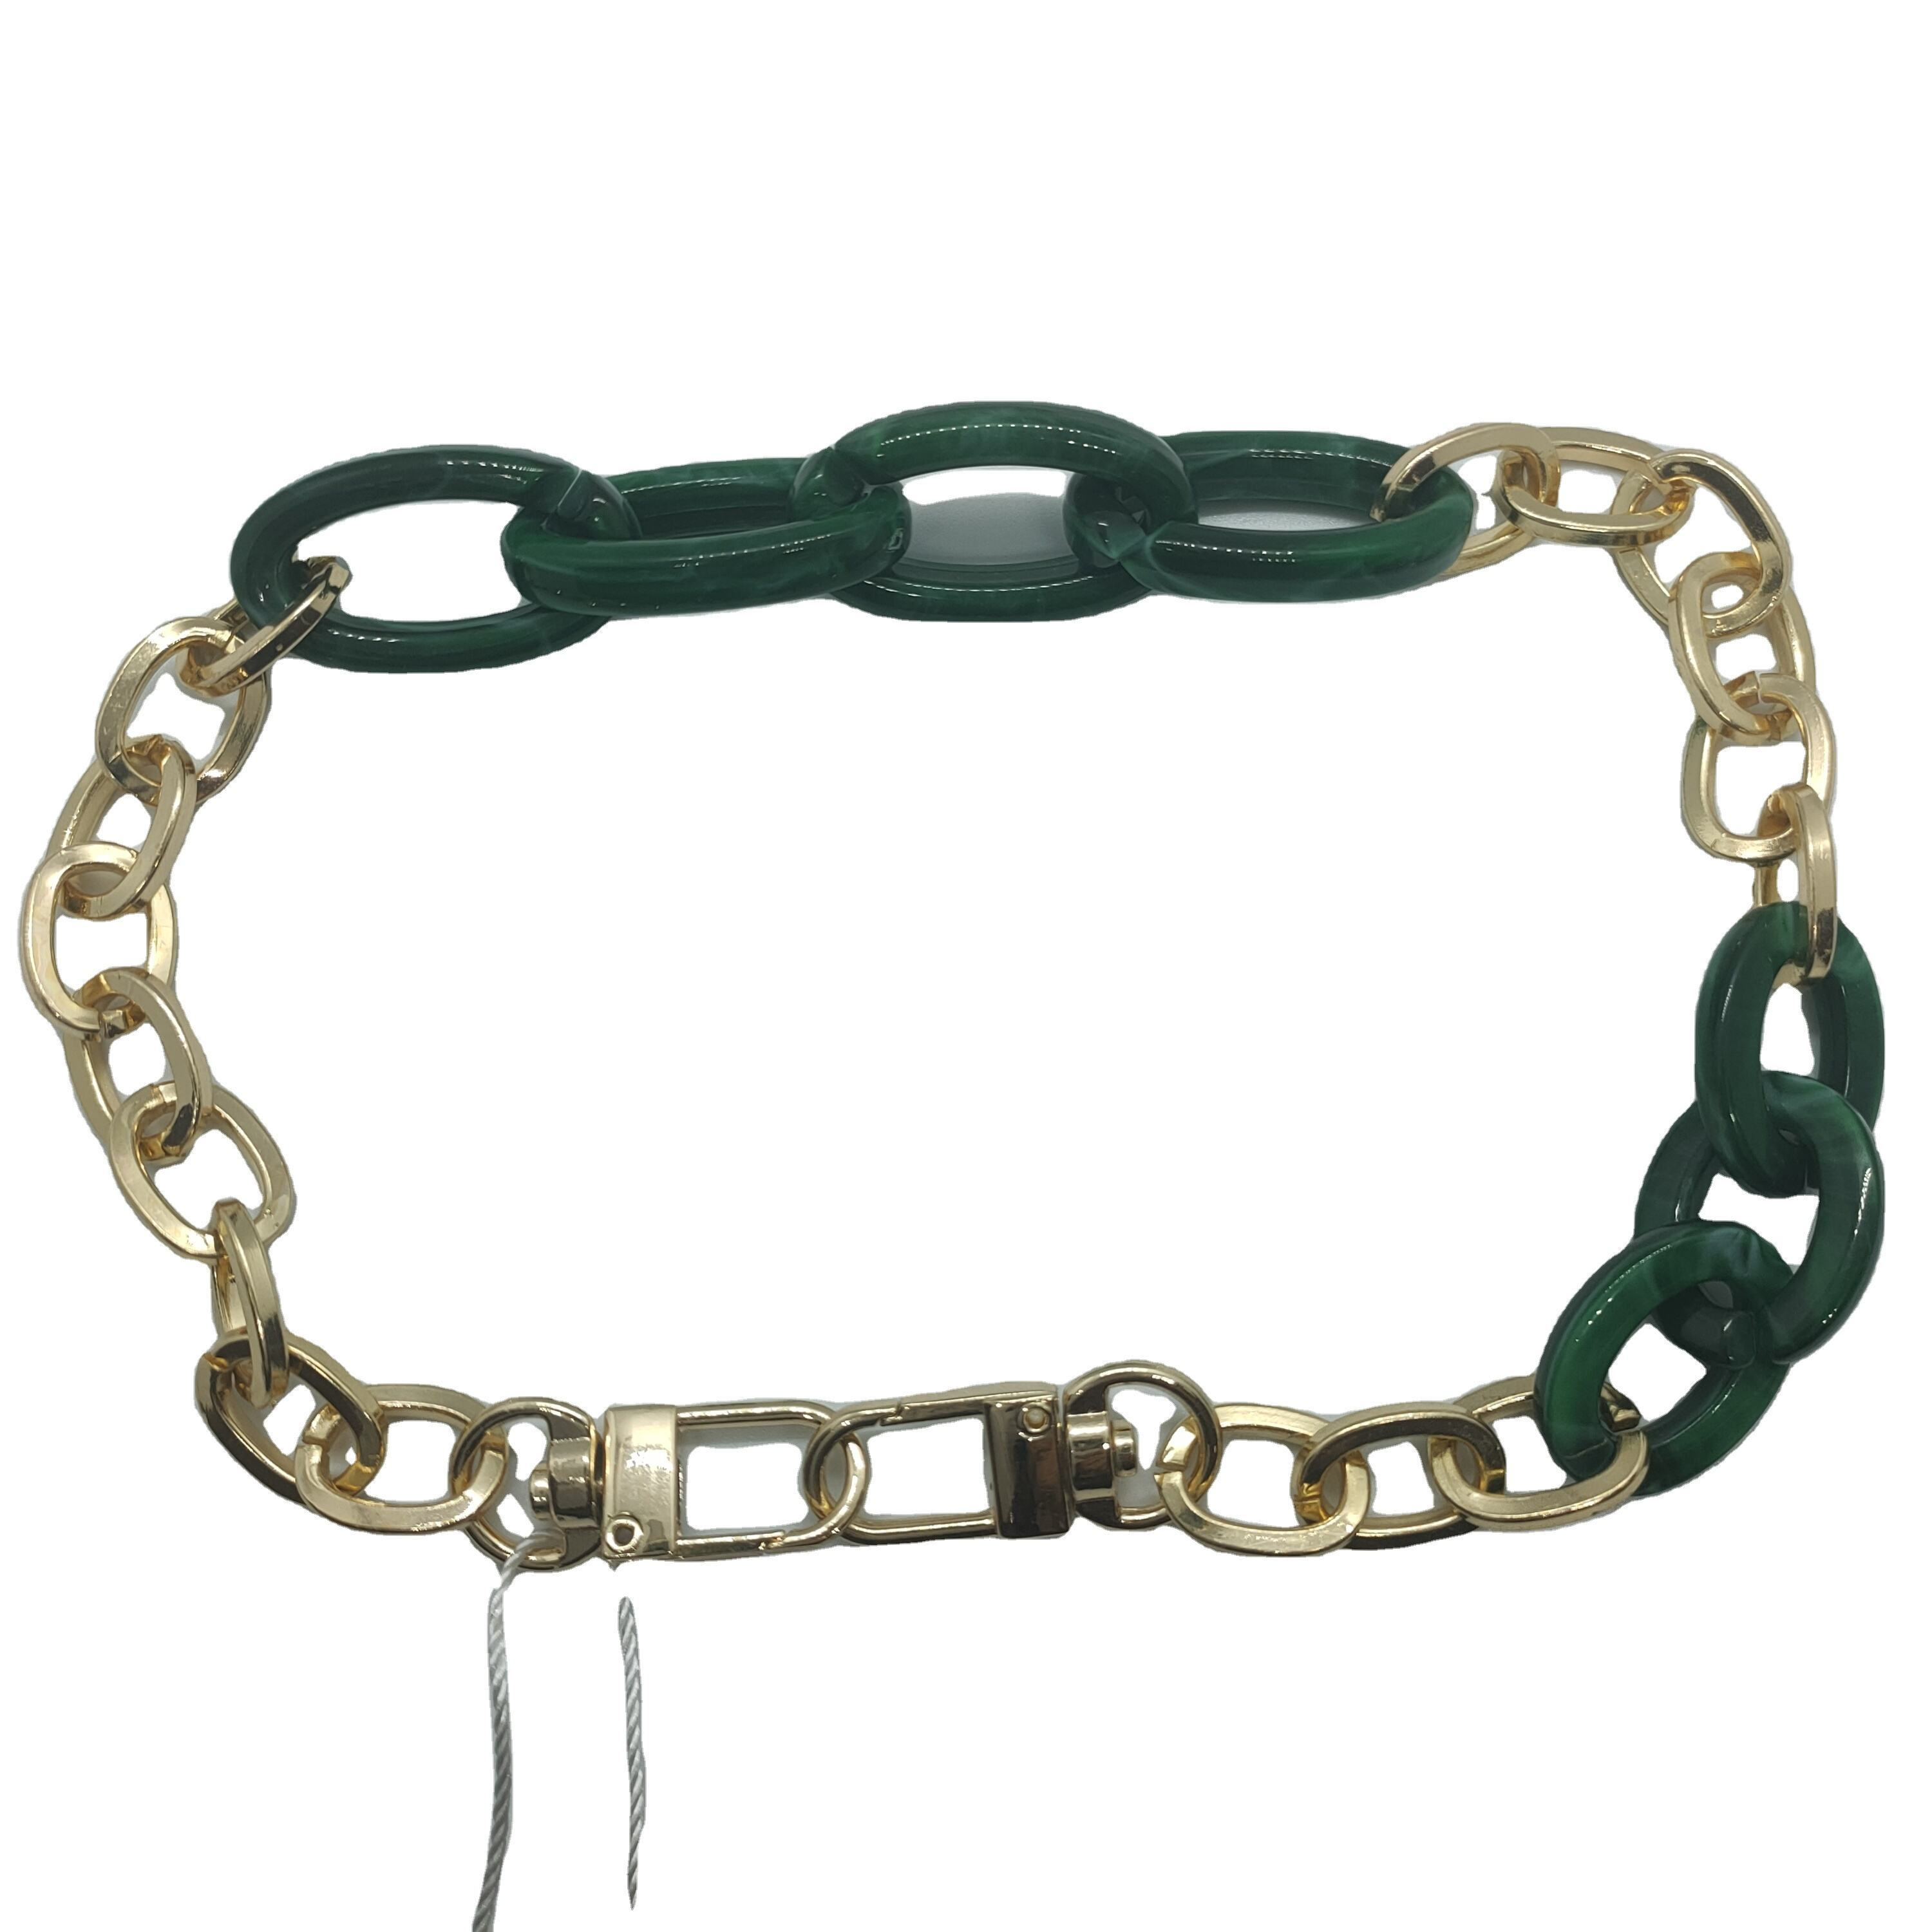 aluminum mixed with plastic chains with zinc hook decoration for handbag, shoes and cloth